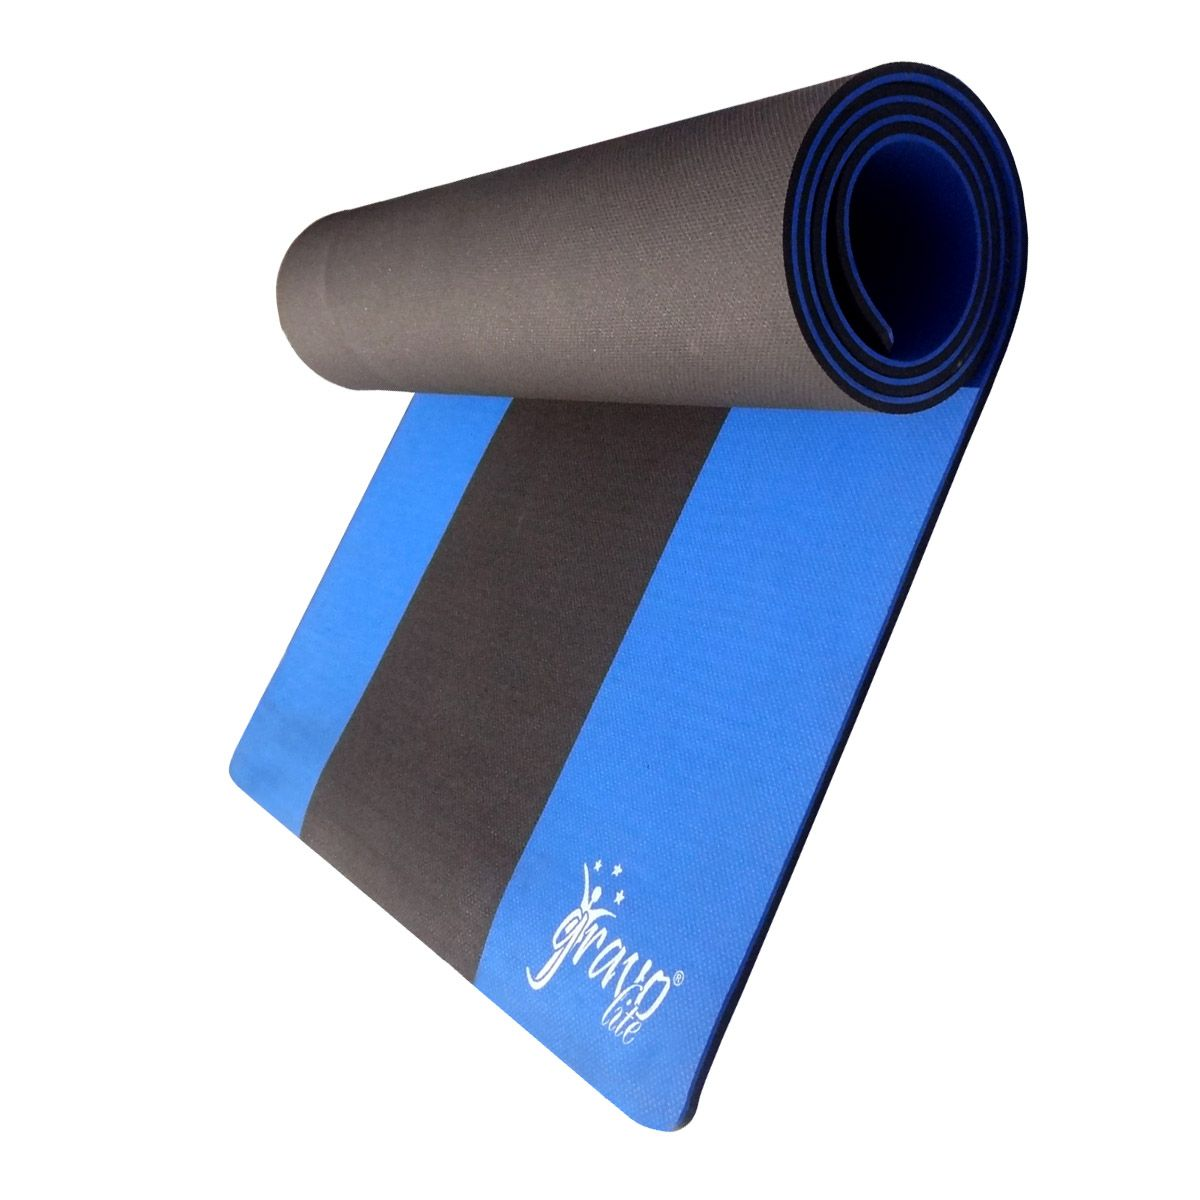 Shop Your Yoga Mats From Yoga Mats Wholesaler At Wholesale Price We Matsindia Best Yoga Mats Wholesaler In India Pro Buy Yoga Mat Yoga Mats Best Karate Mats